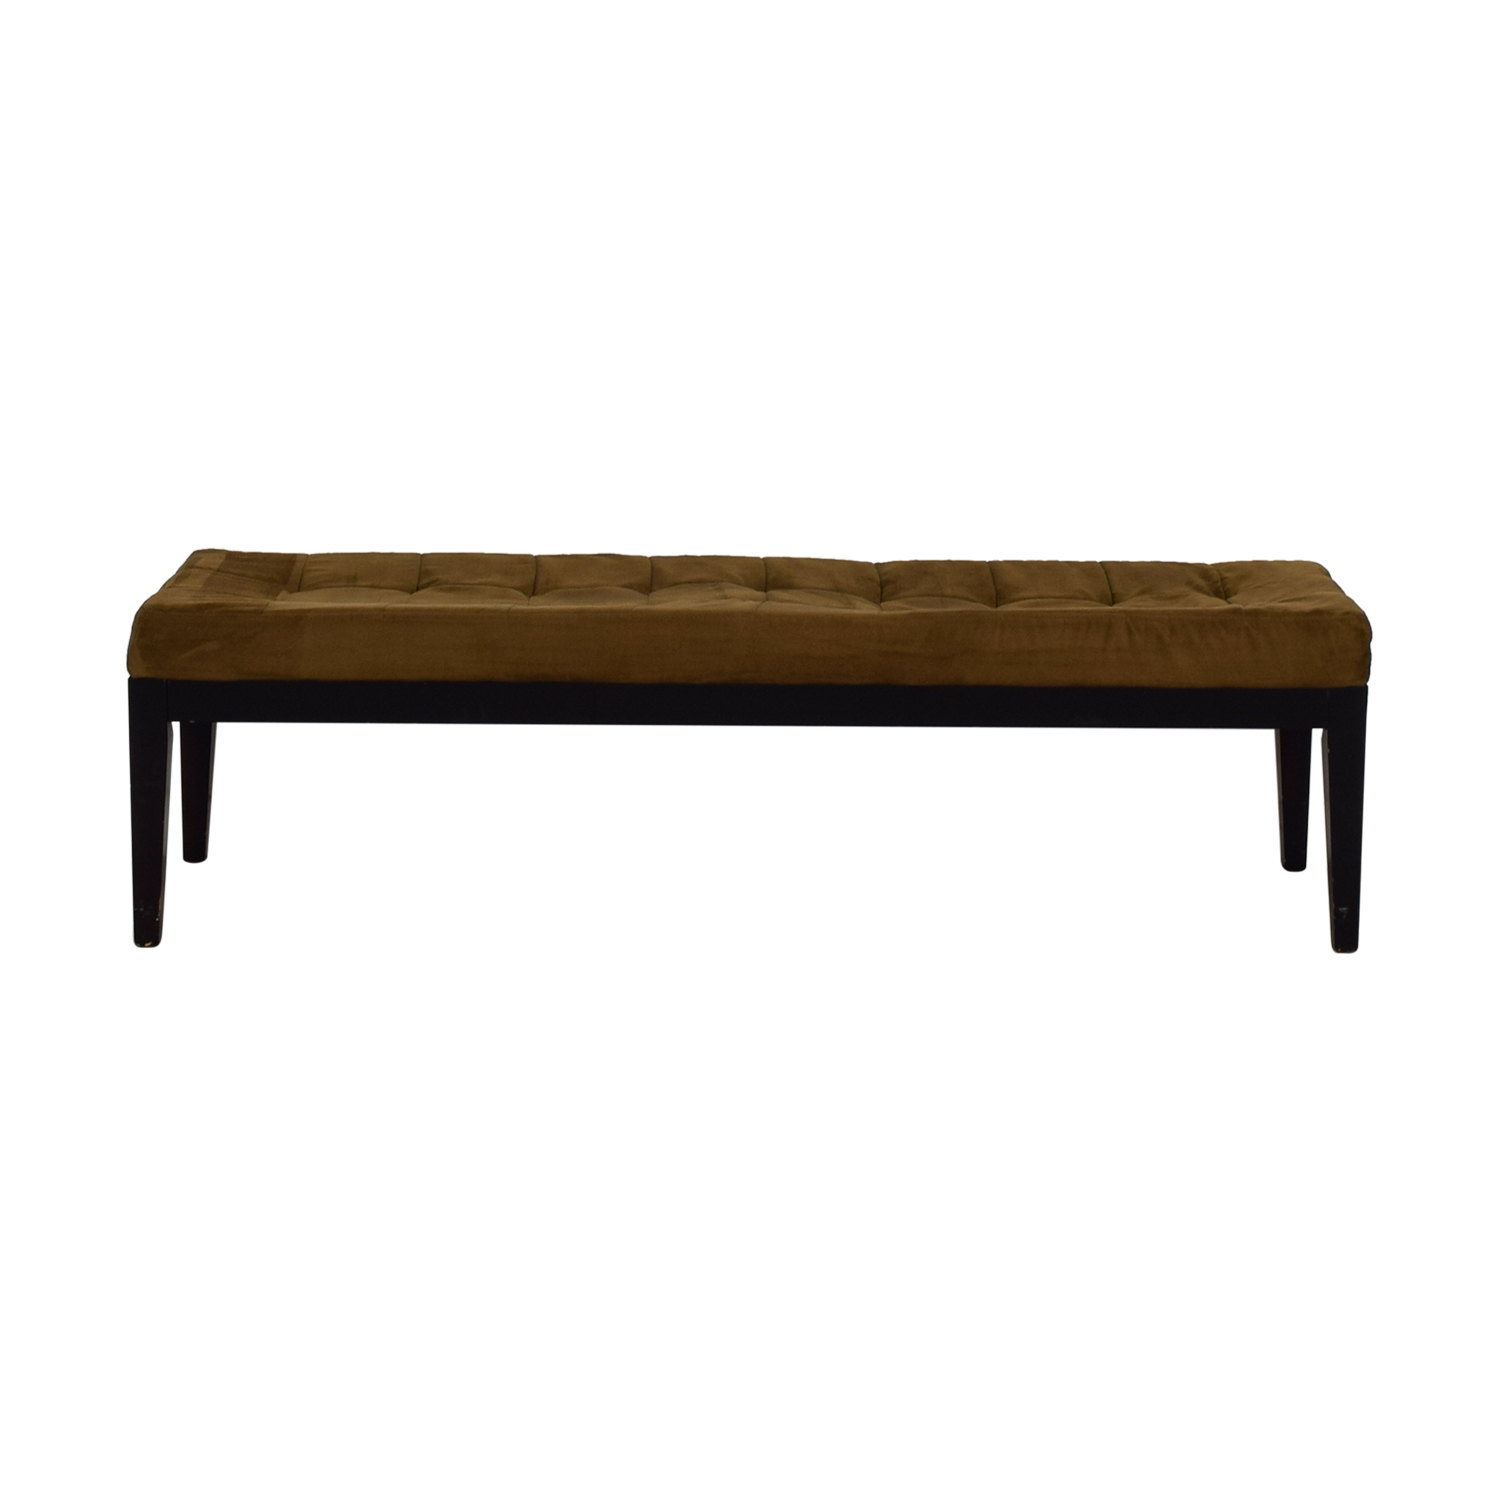 Brown Tufted Microfiber Bench dimensions